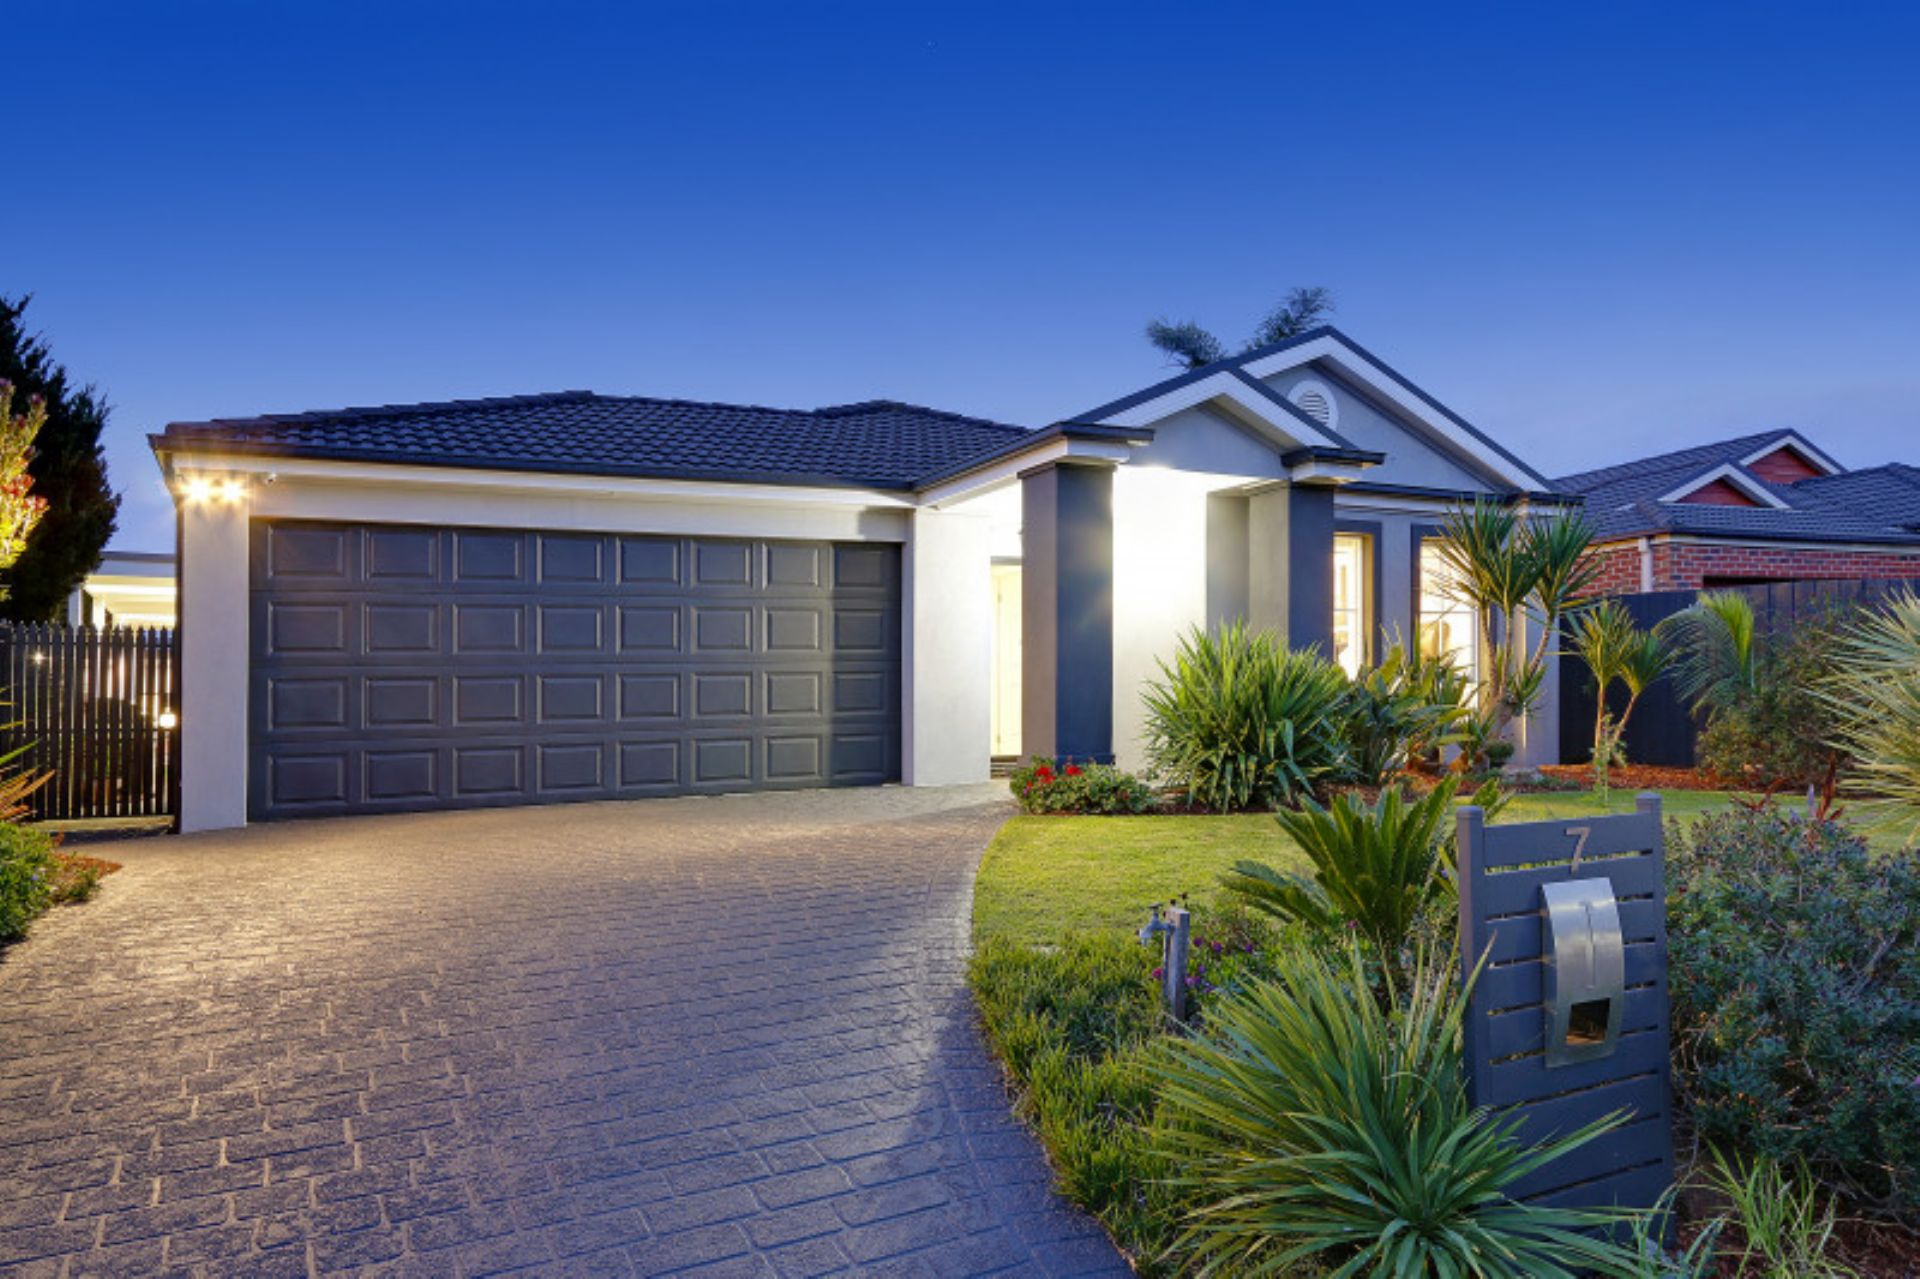 7 Marquis Avenue, MORNINGTON, VIC, 3931 - Image